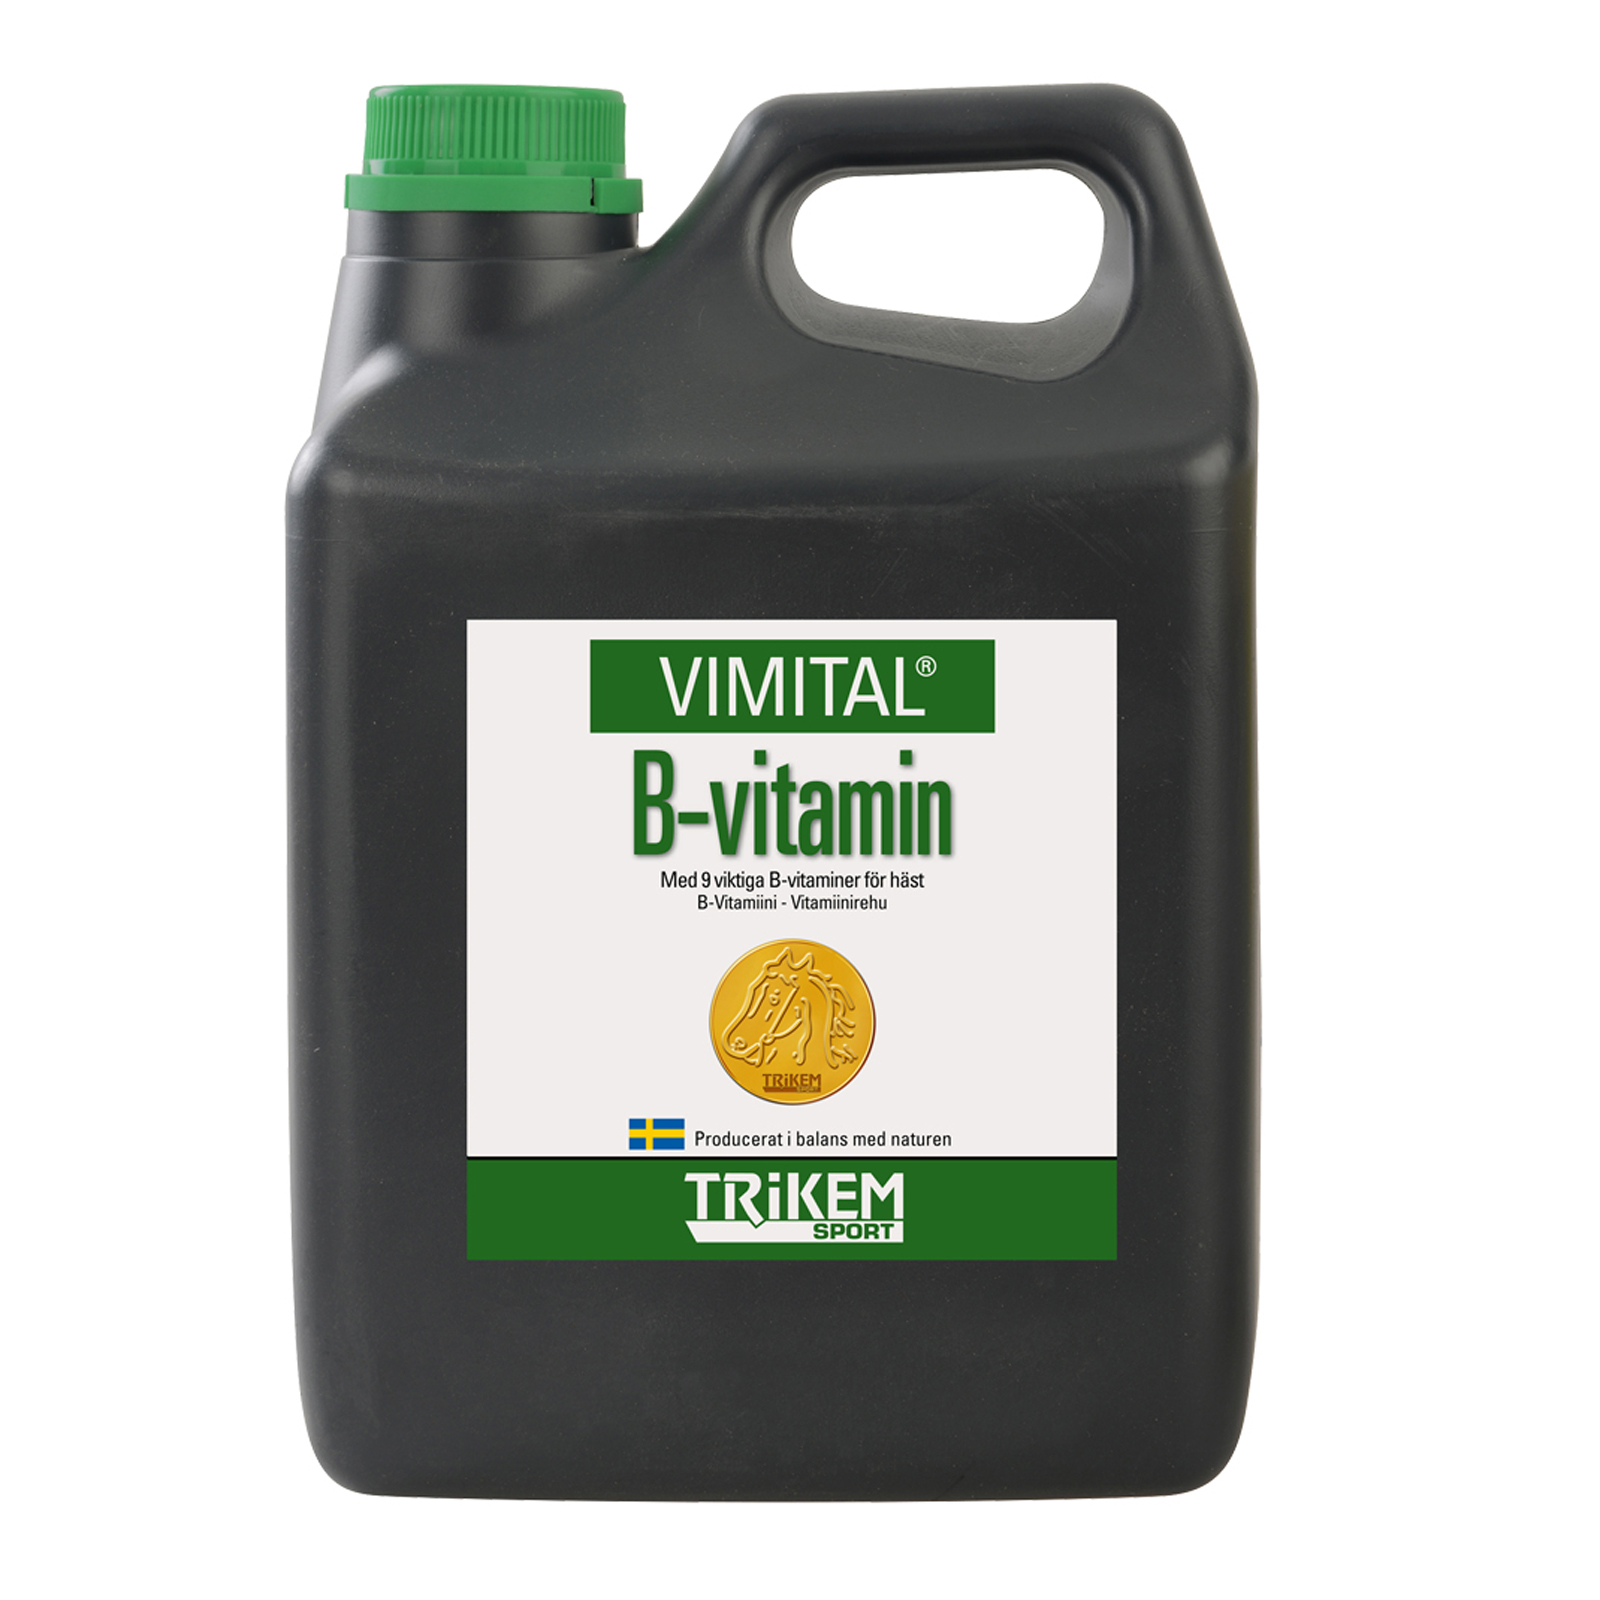 Trikem Vimital B-vitamin 5000 ml